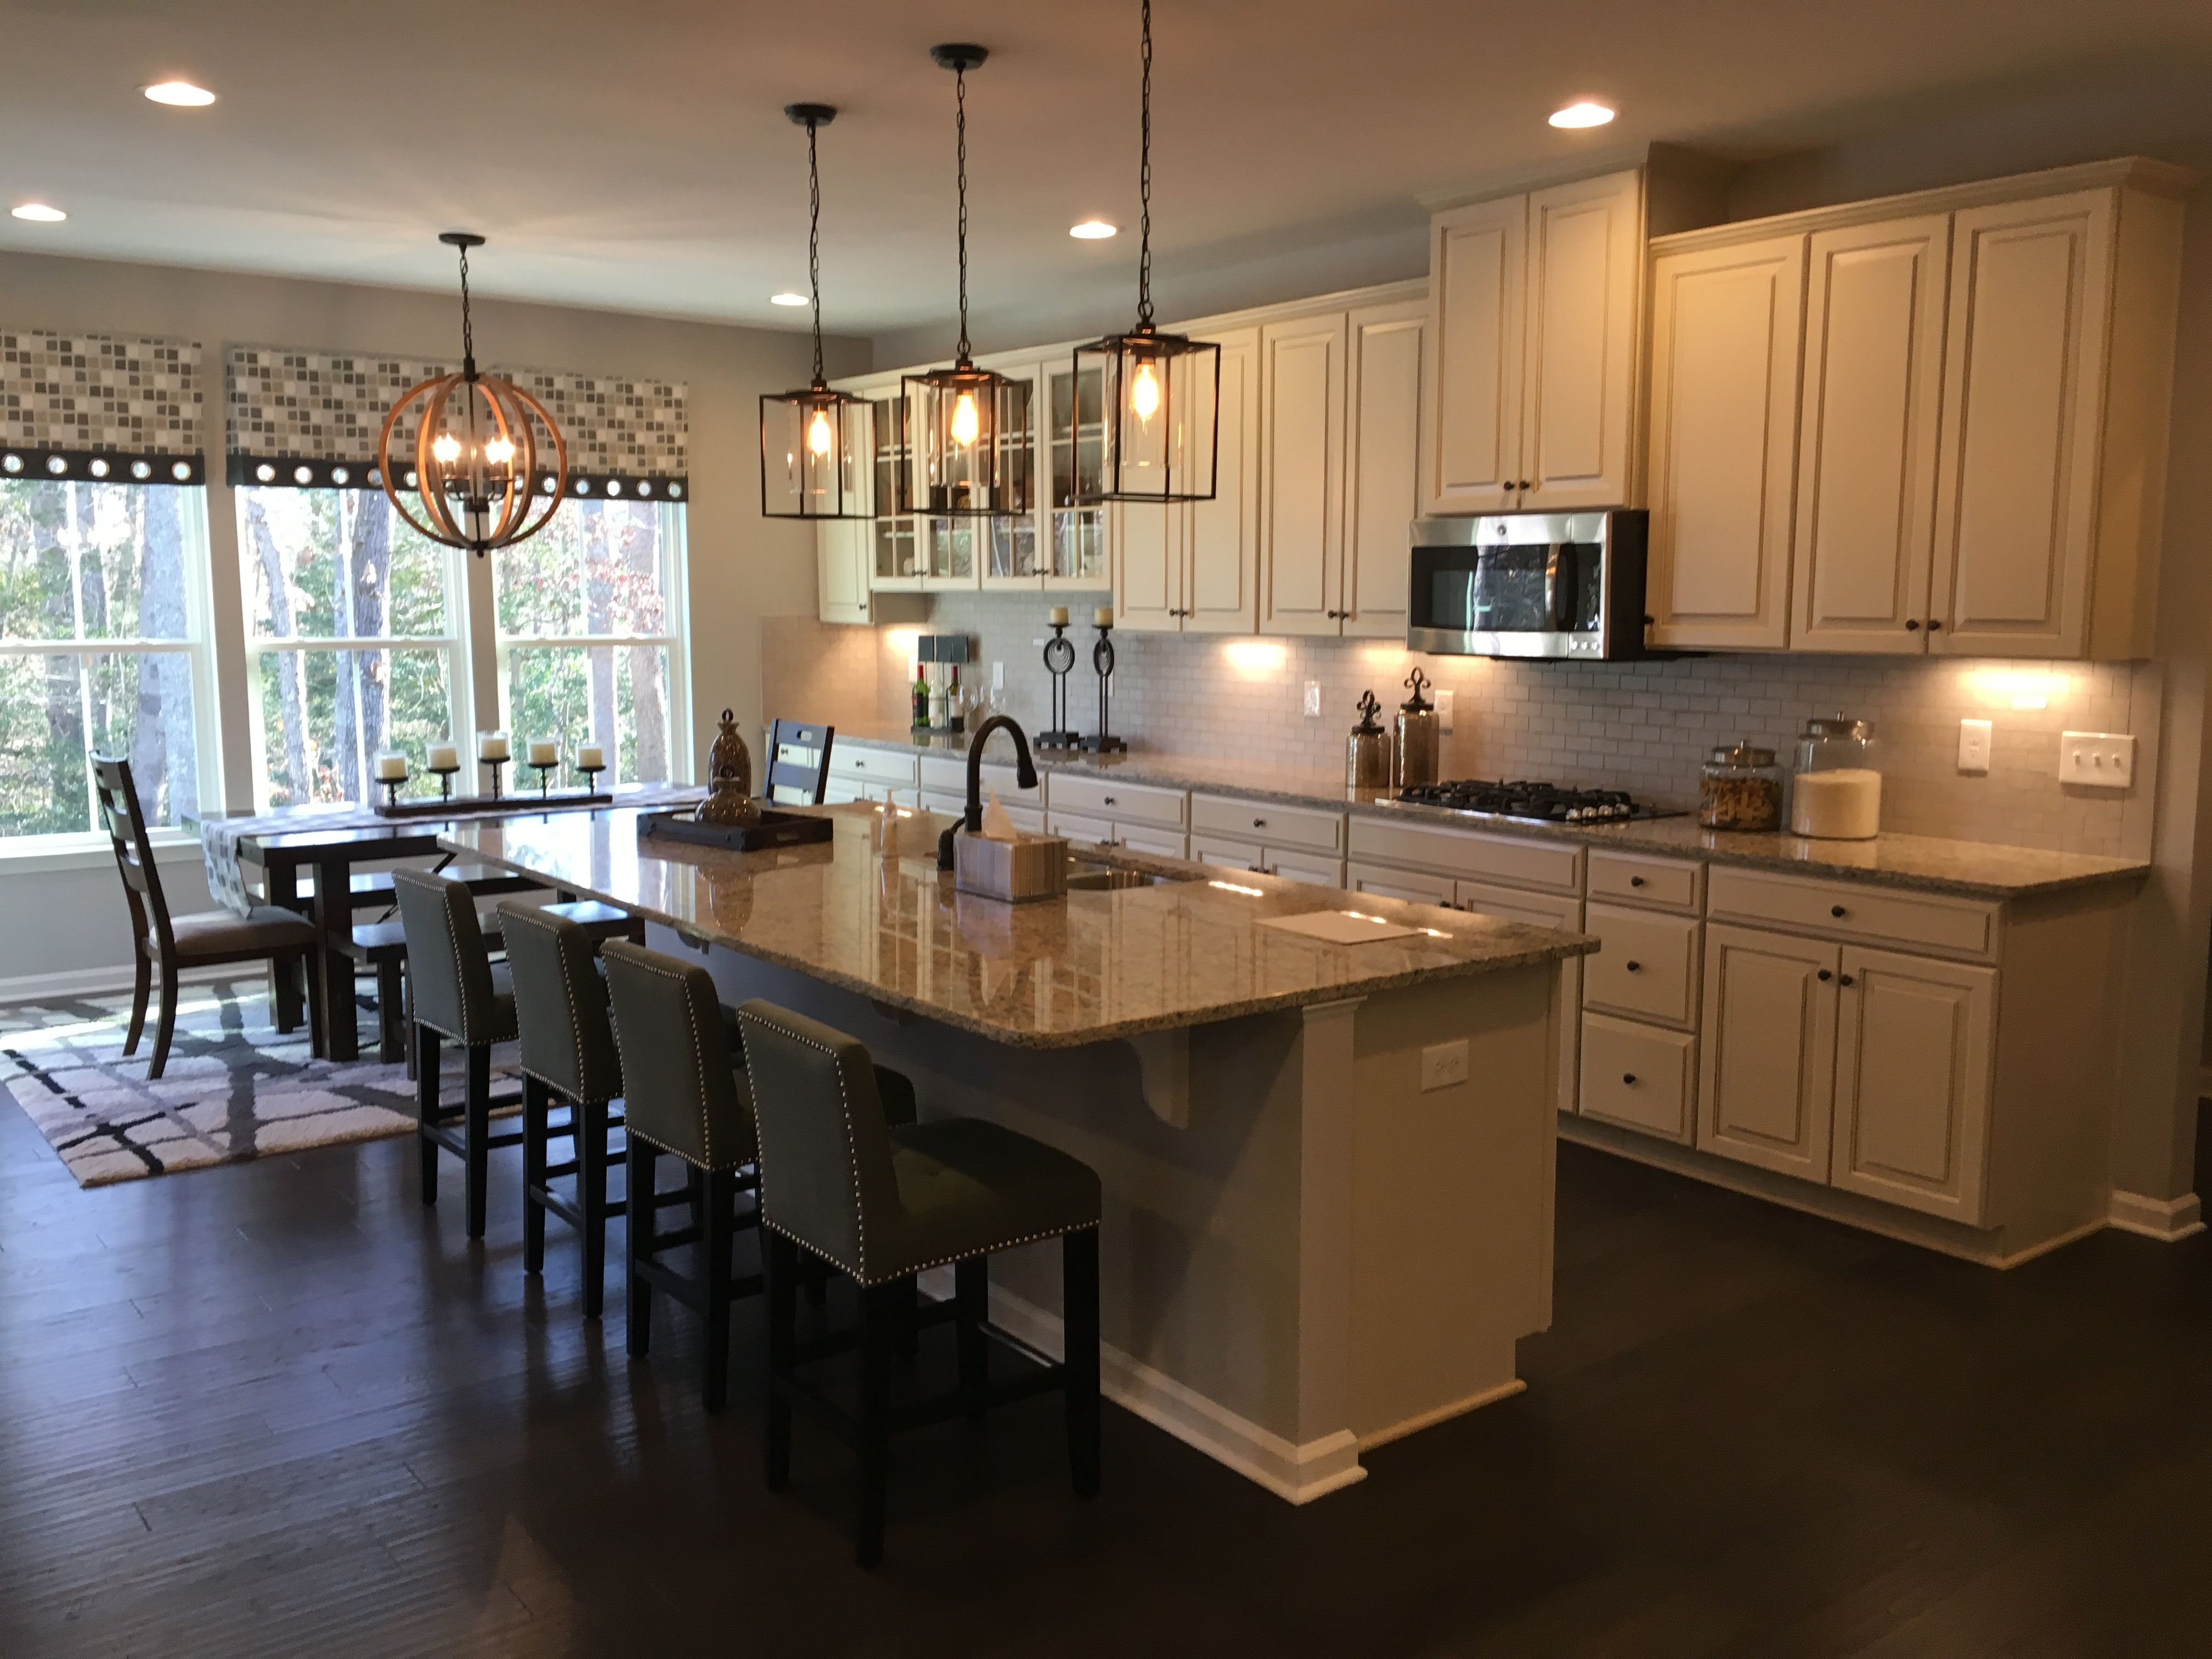 kitchens in new homes 4 piece stainless steel kitchen package layout jefferson square model ryan